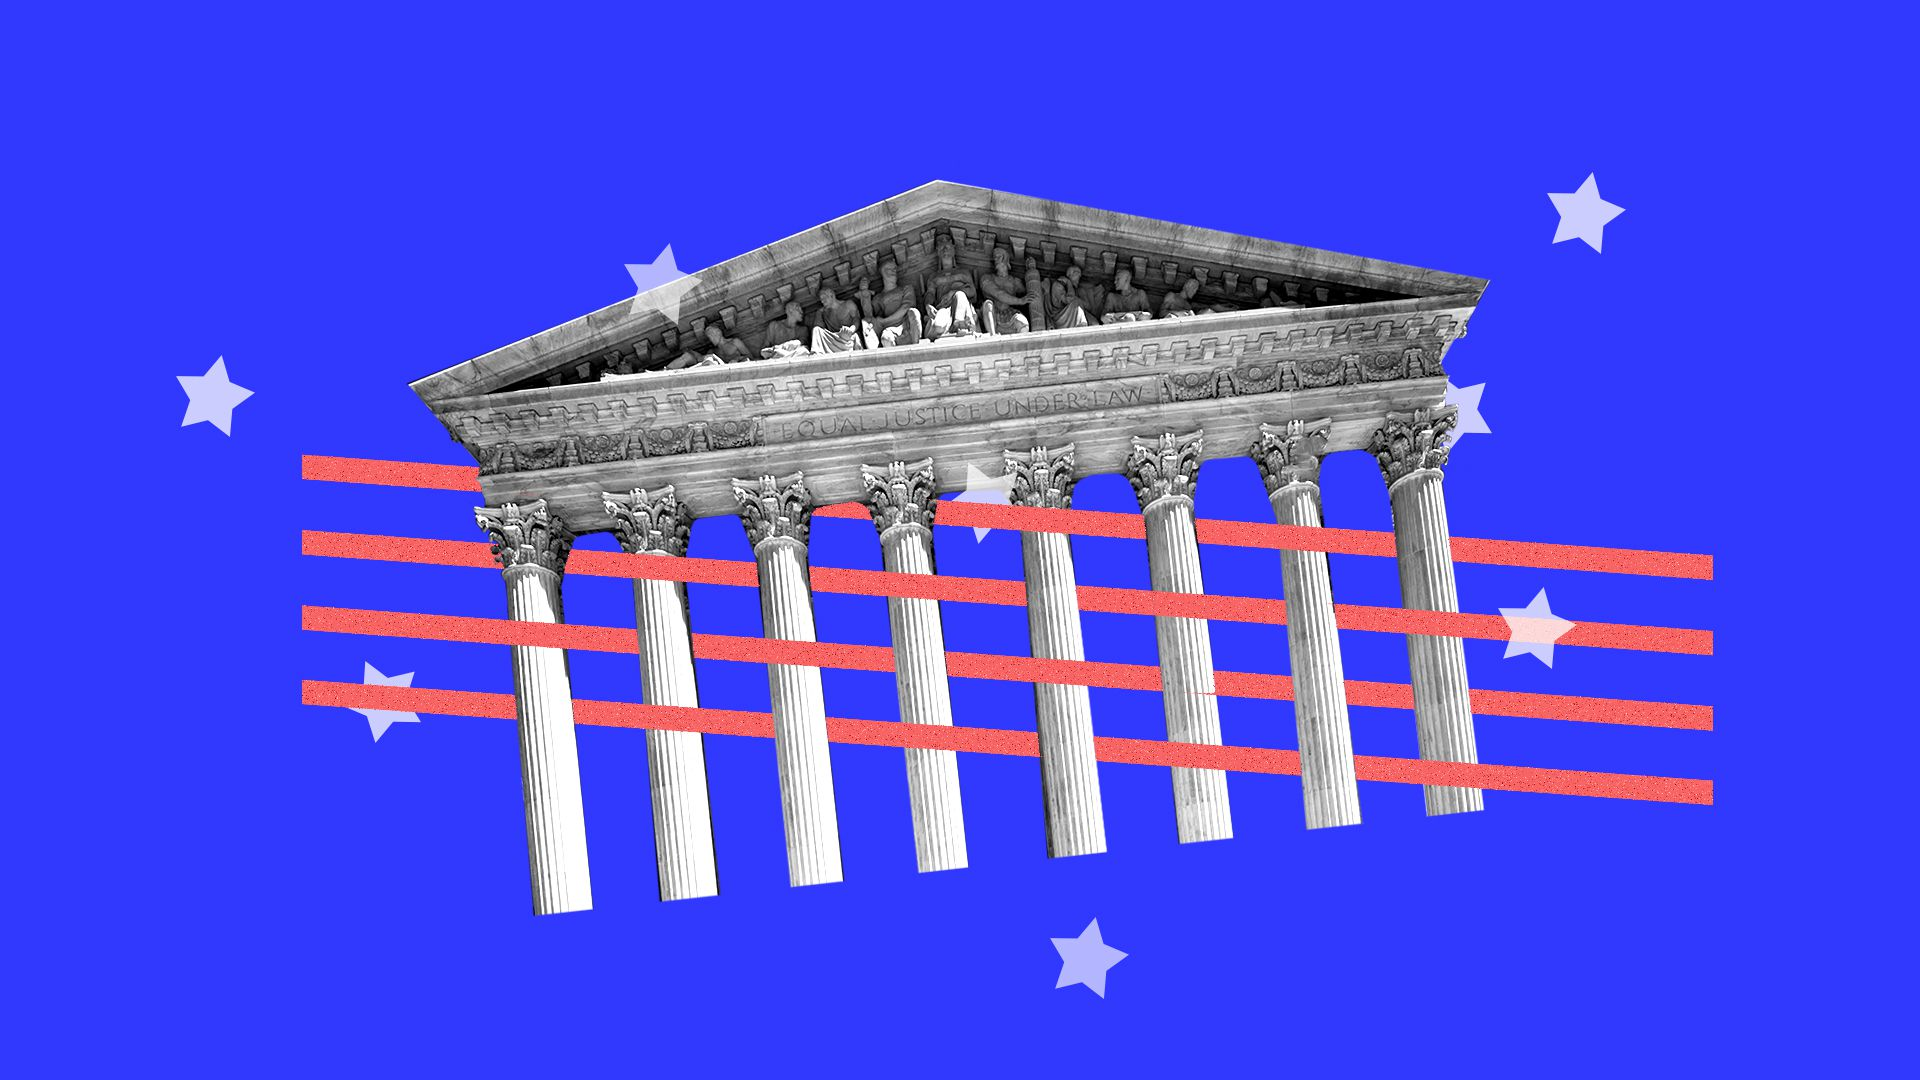 Illustration of the supreme court intertwined with elements from an American flag